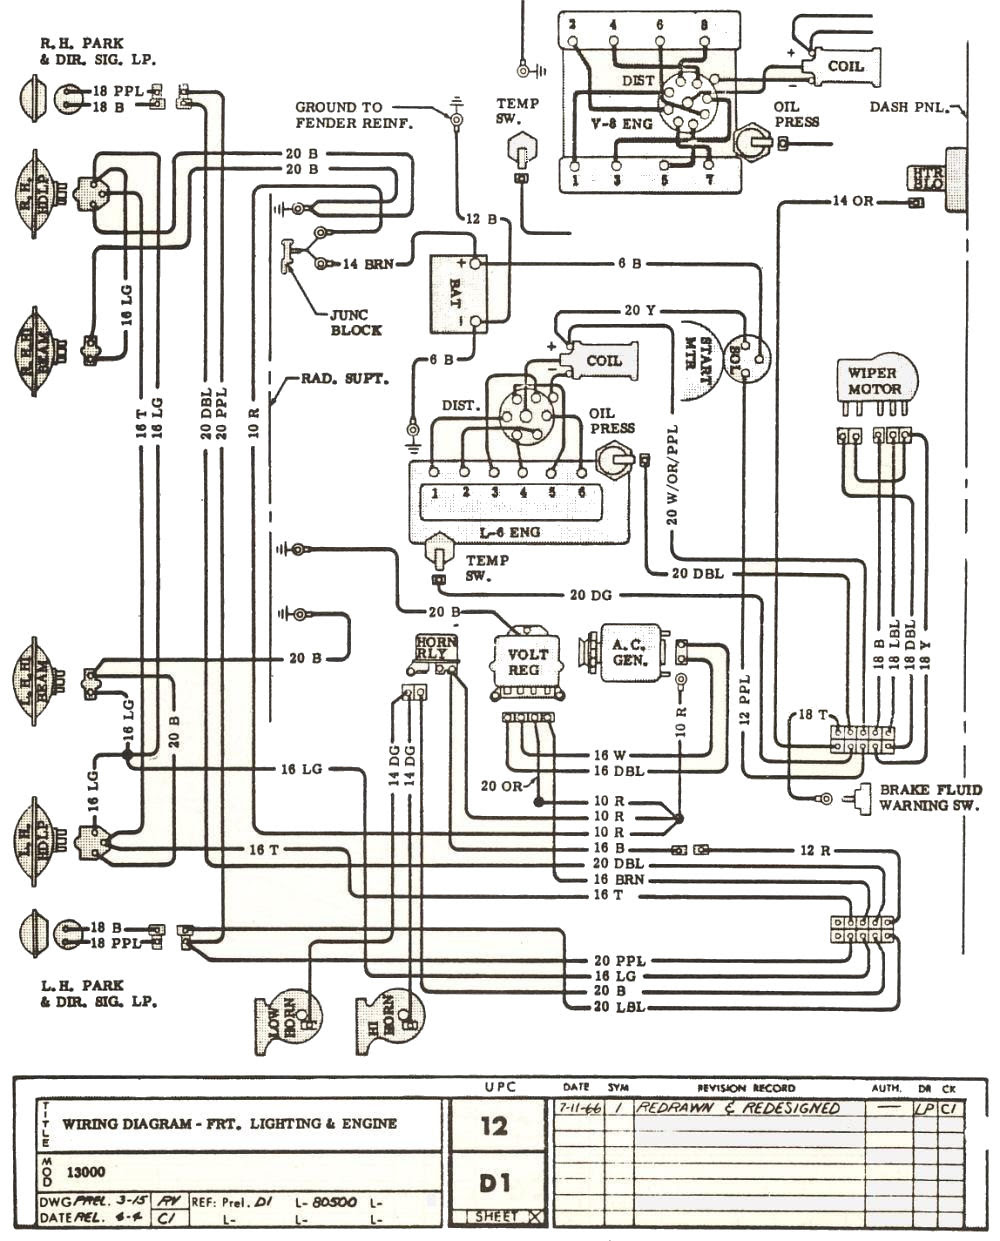 diagram] 66 gto ignition switch wiring diagram full version hd quality wiring  diagram - wedowiring.vivintensamente.it  wiring diagram box